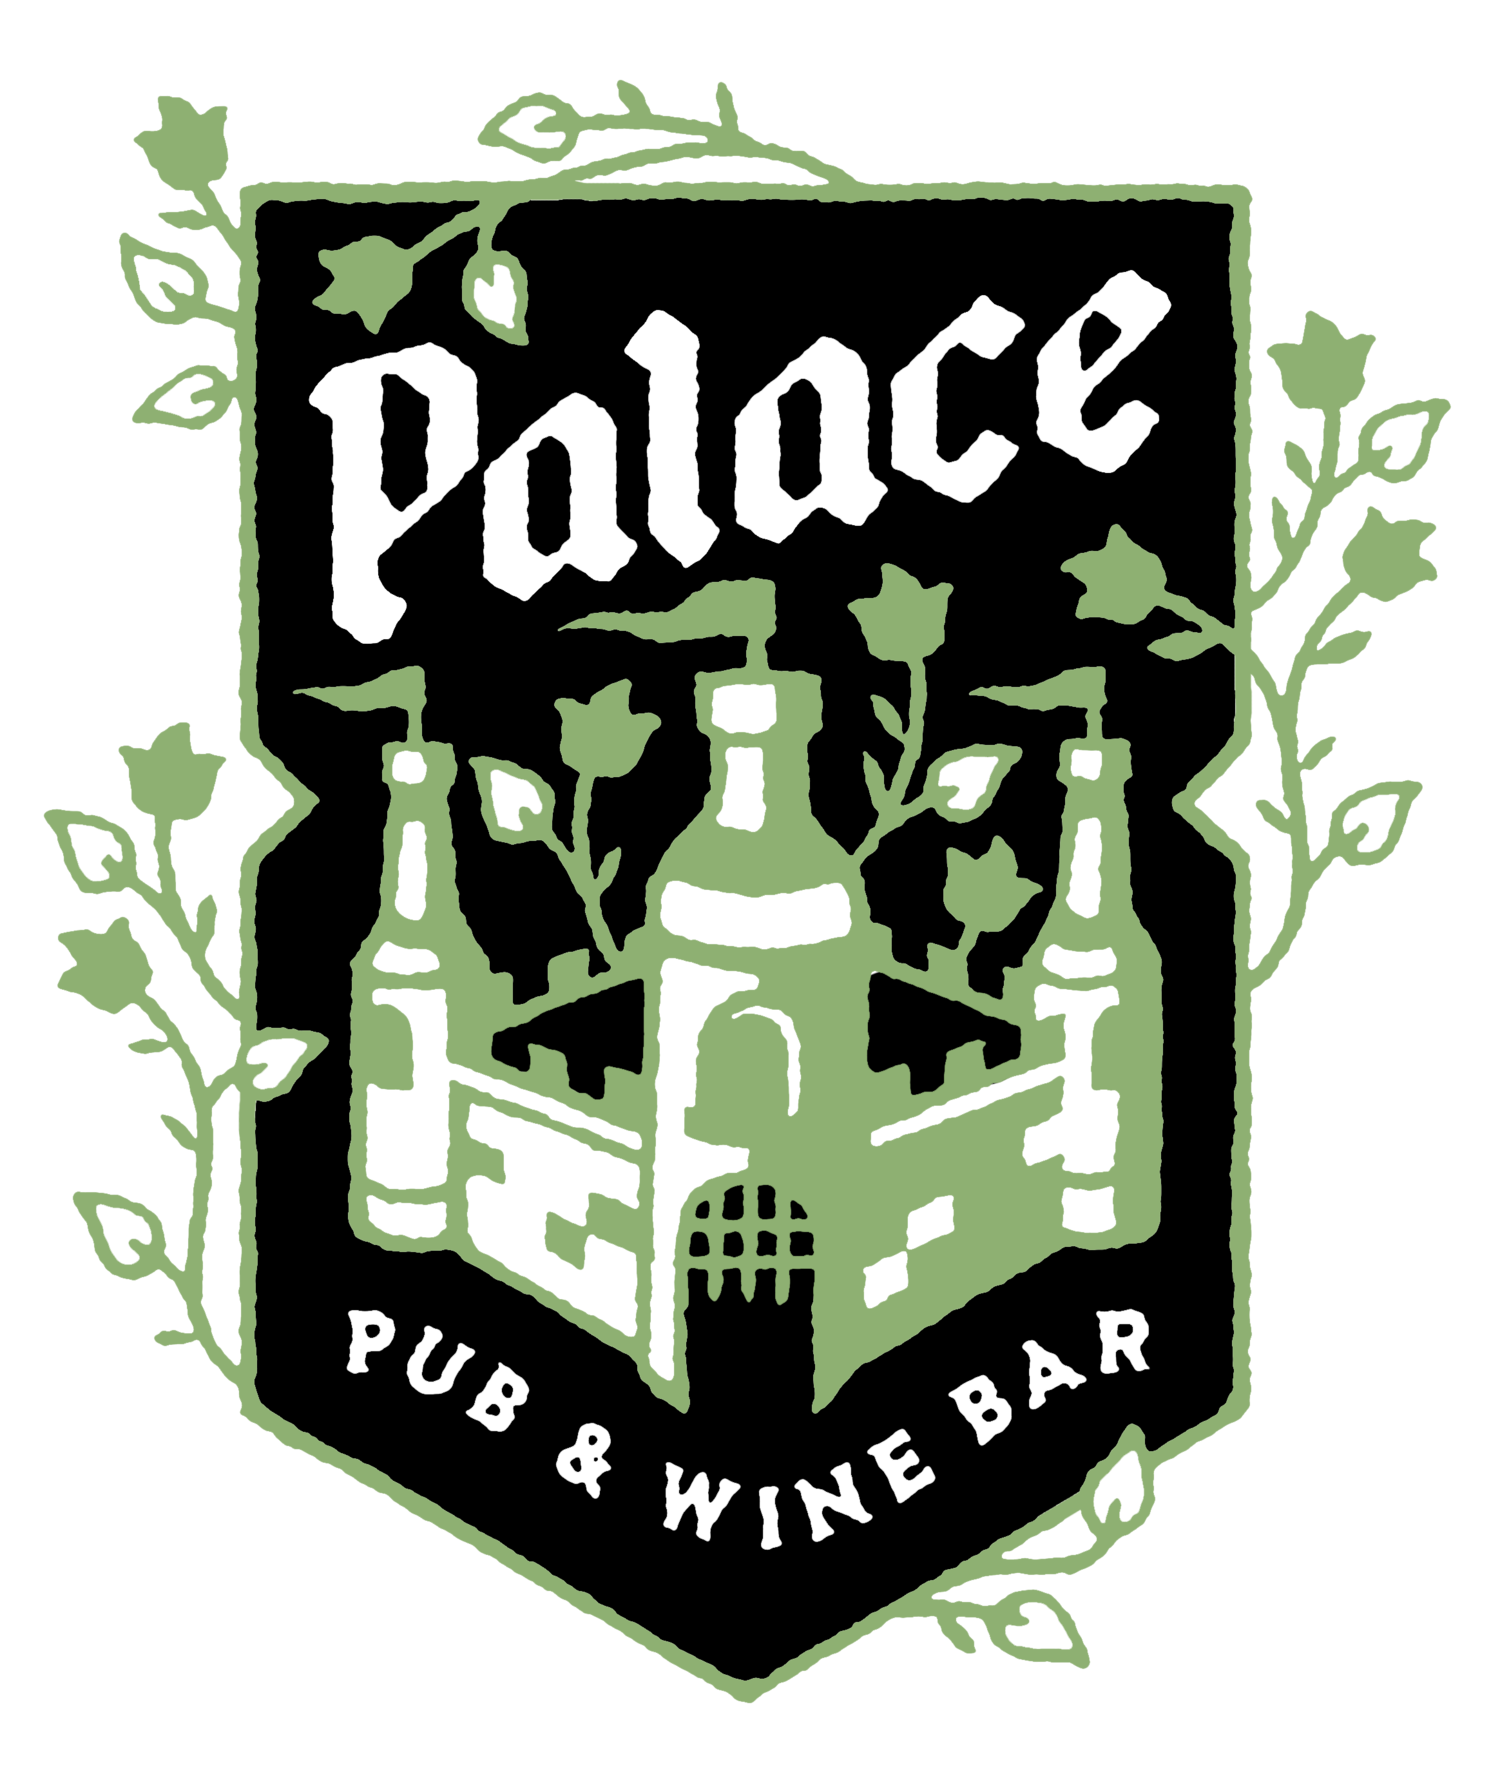 Palace Pub & Wine